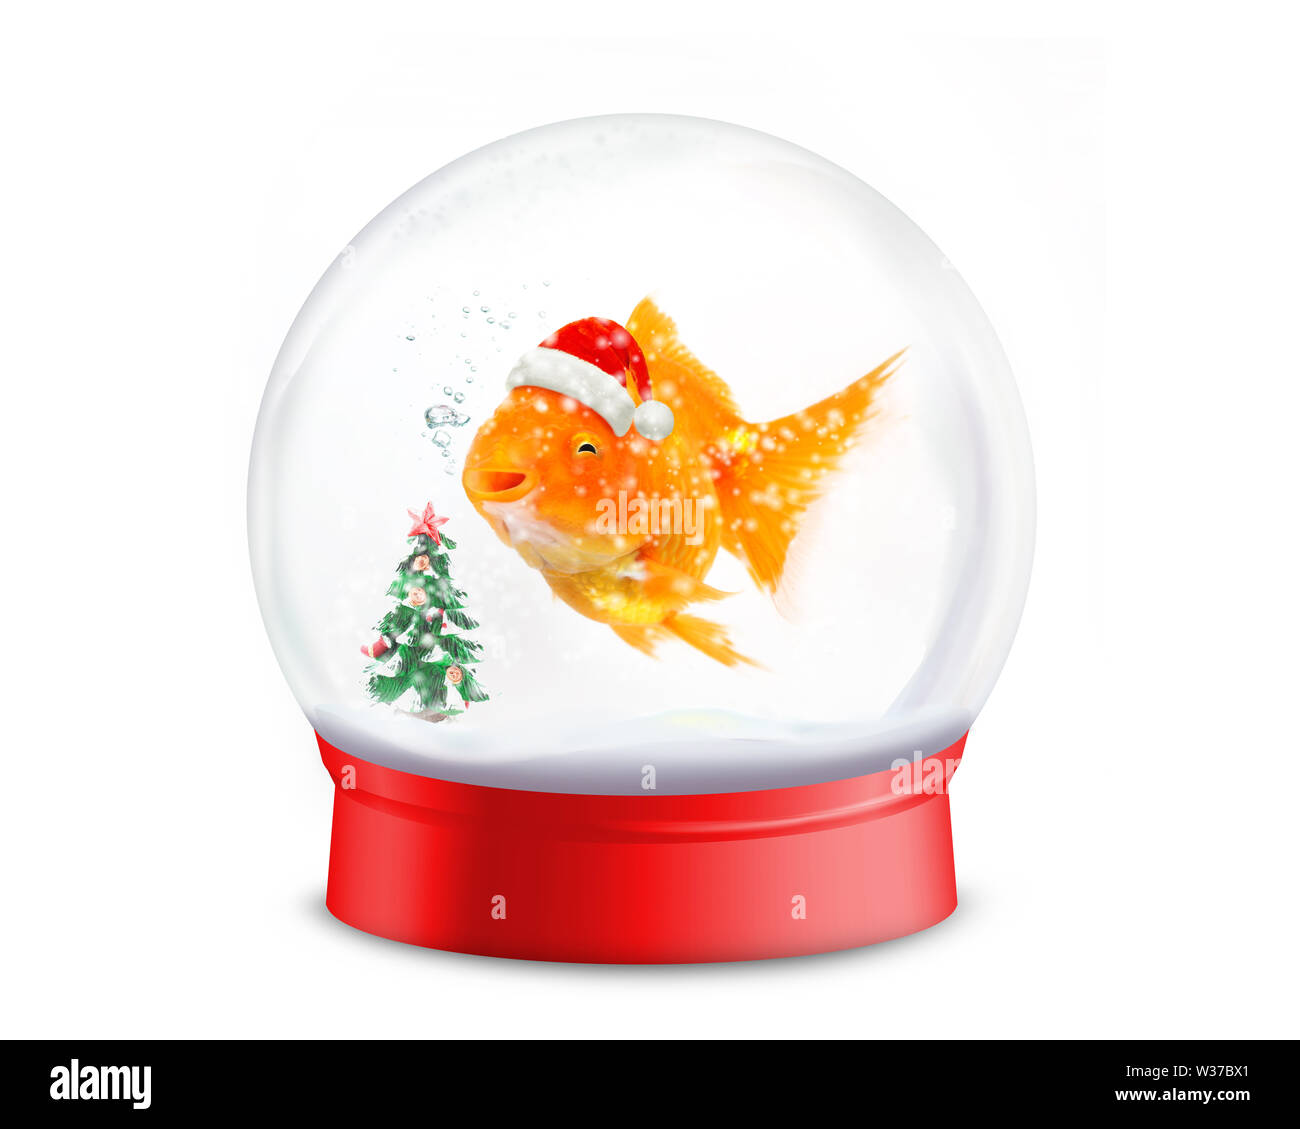 Smiley goldfish wearing a santa hat  with christmas tree  in red snowball on white background - Stock Image